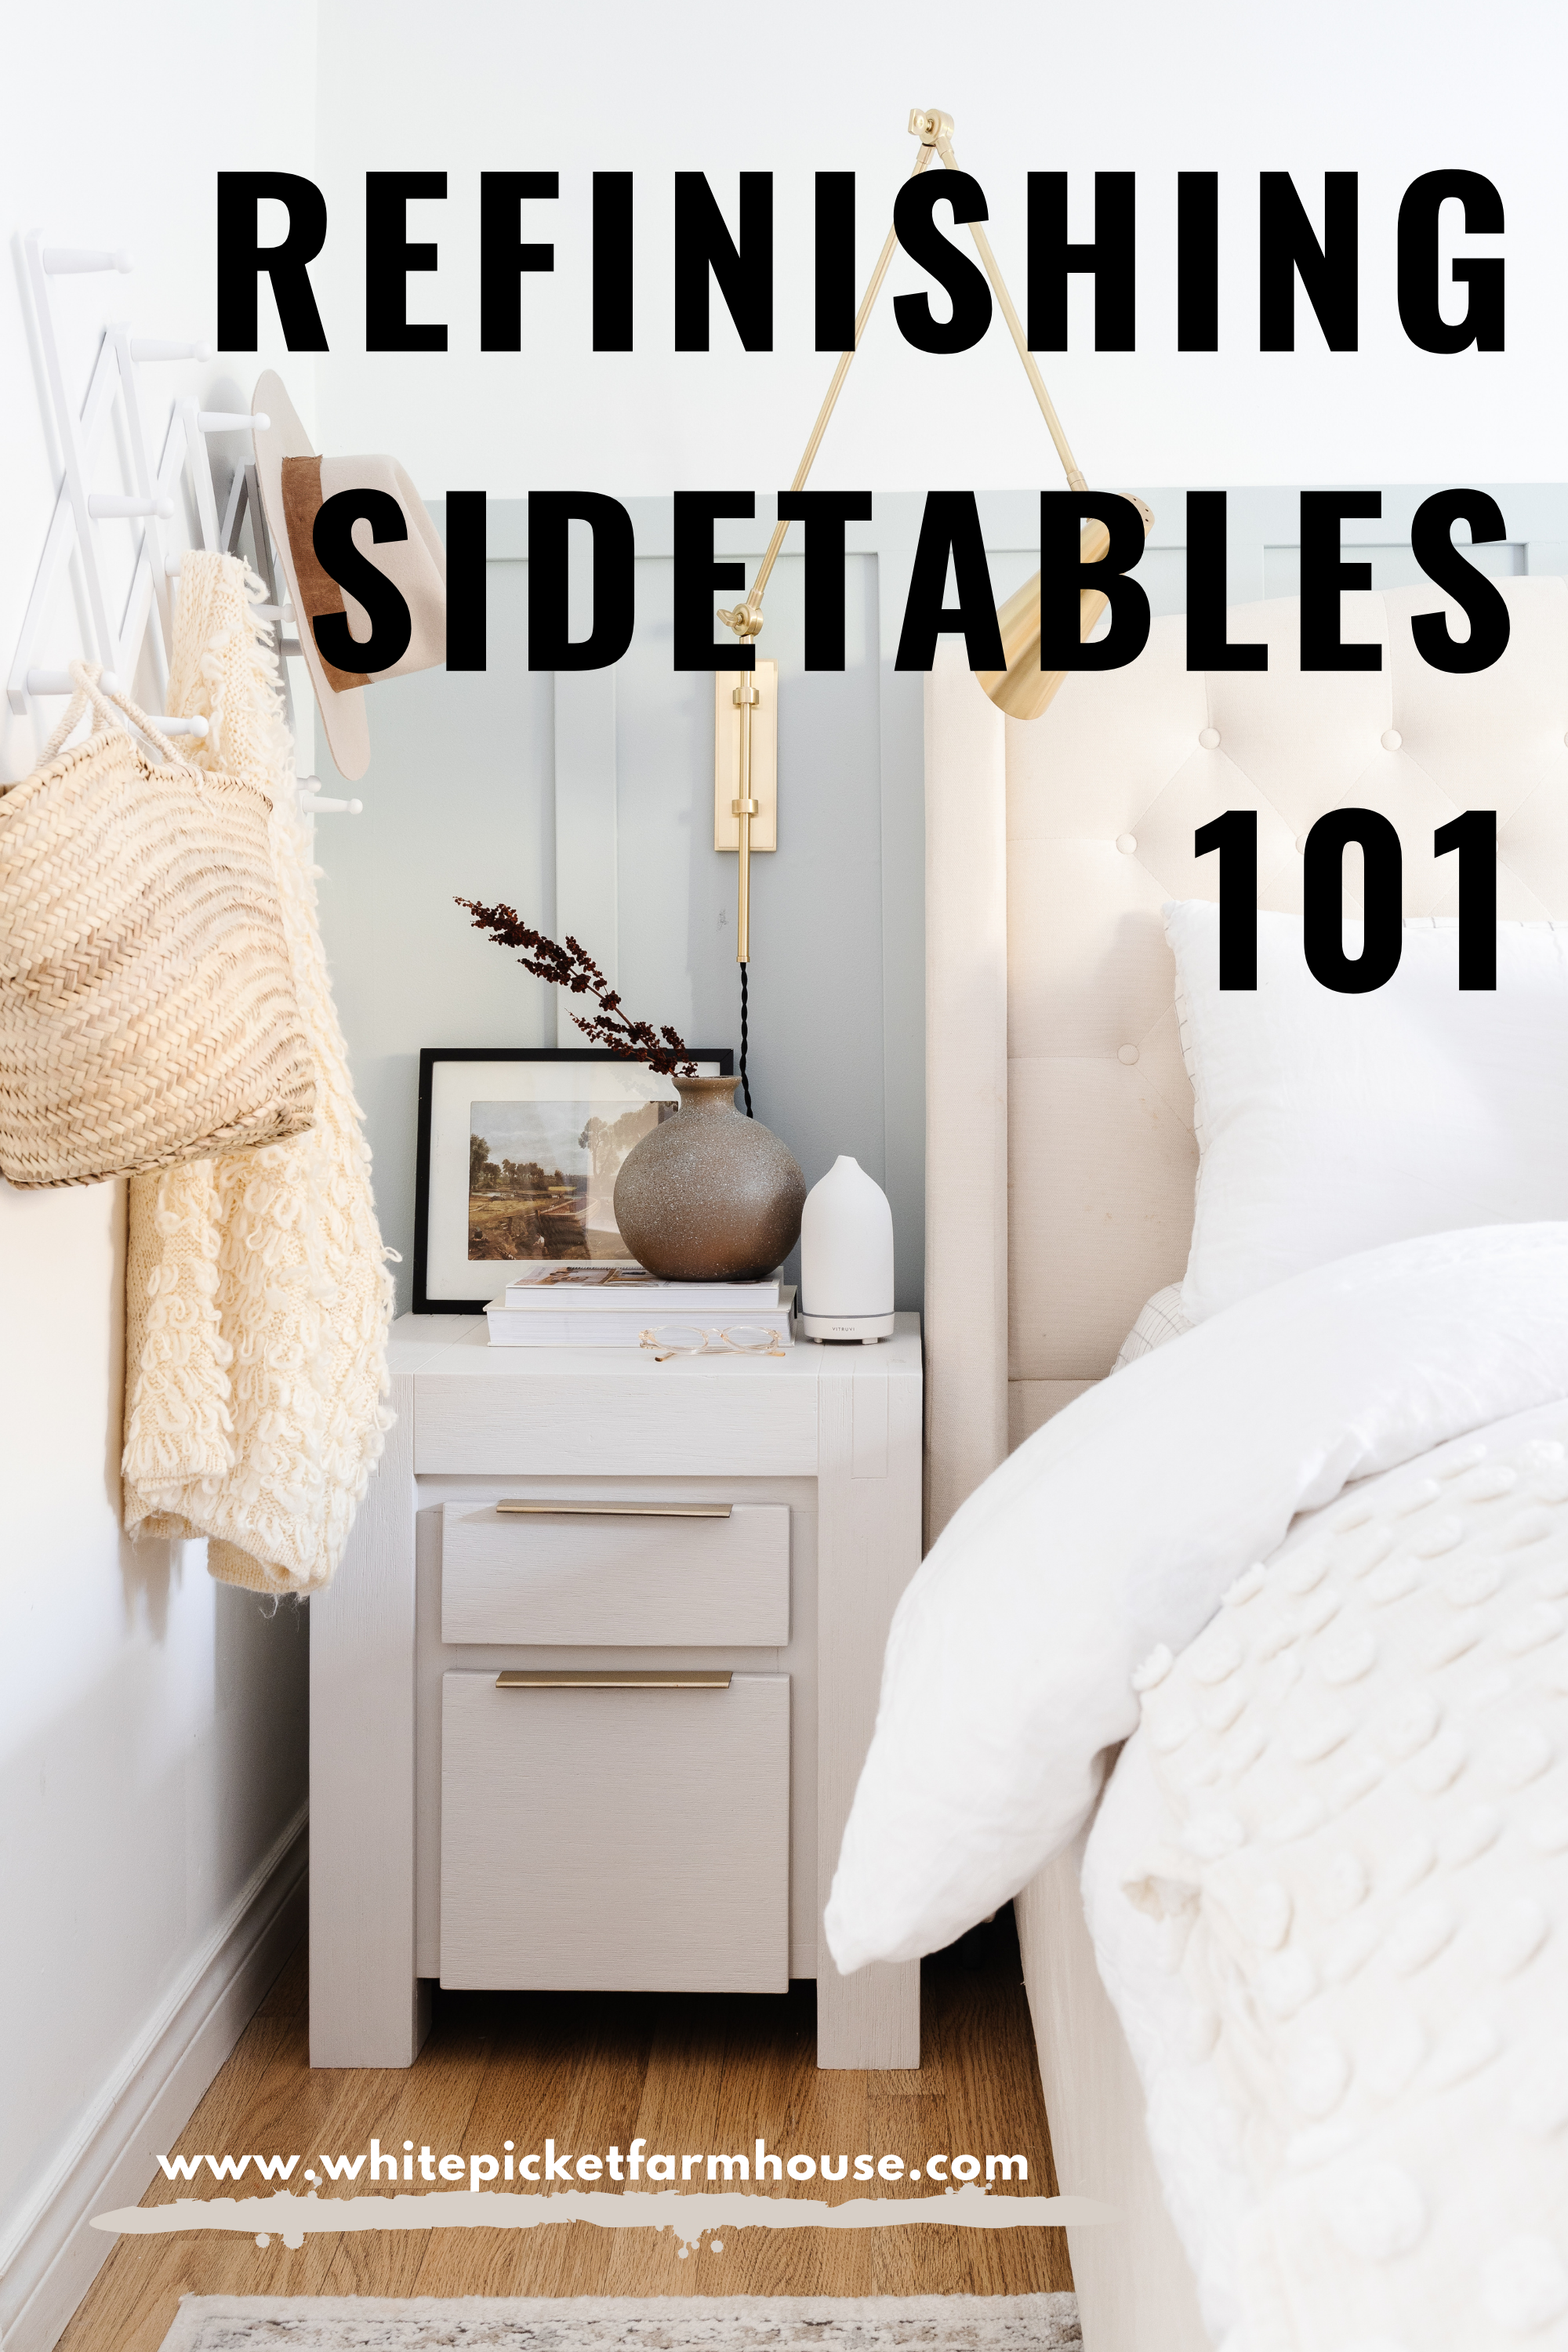 Refinishing Side Tables 101. How To Refinish Furniture The Easy and Cheap way. Sharing all my tips and tricks after refinishing over 1,000 pieces of!